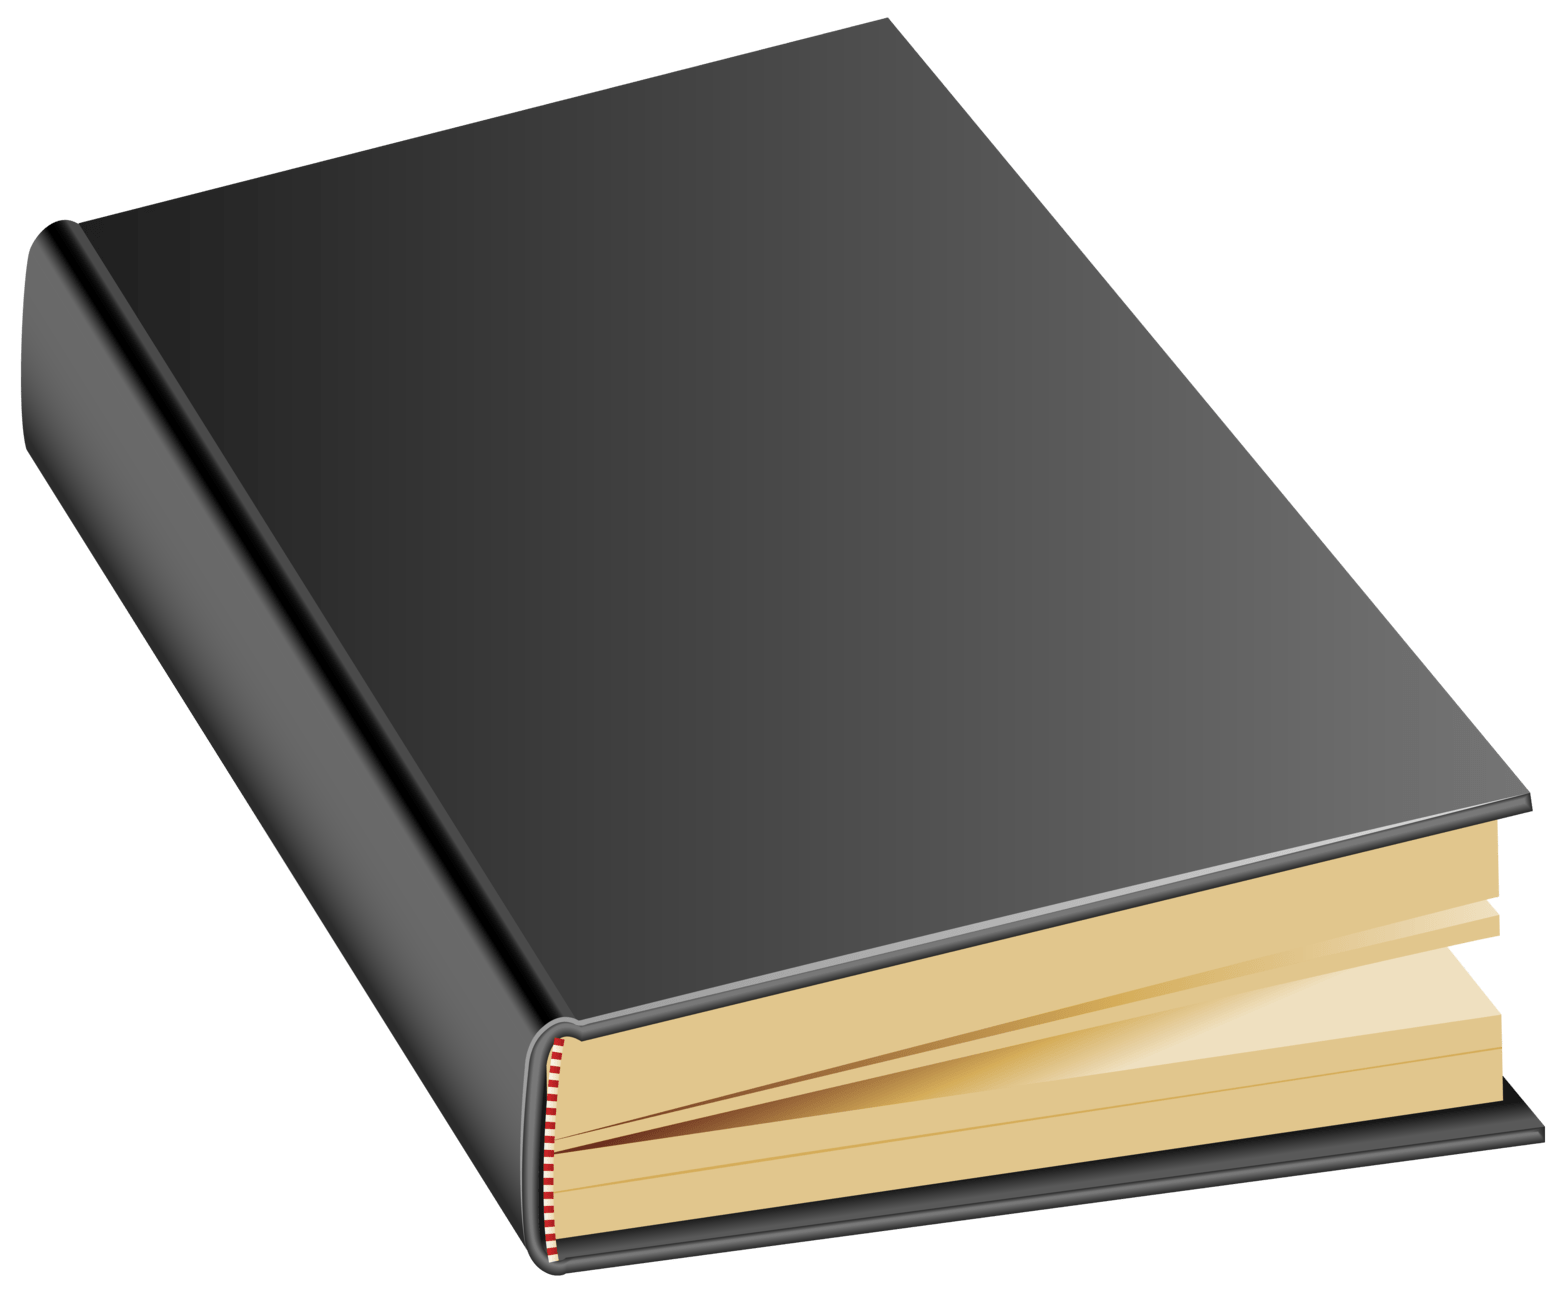 hight resolution of clipart book